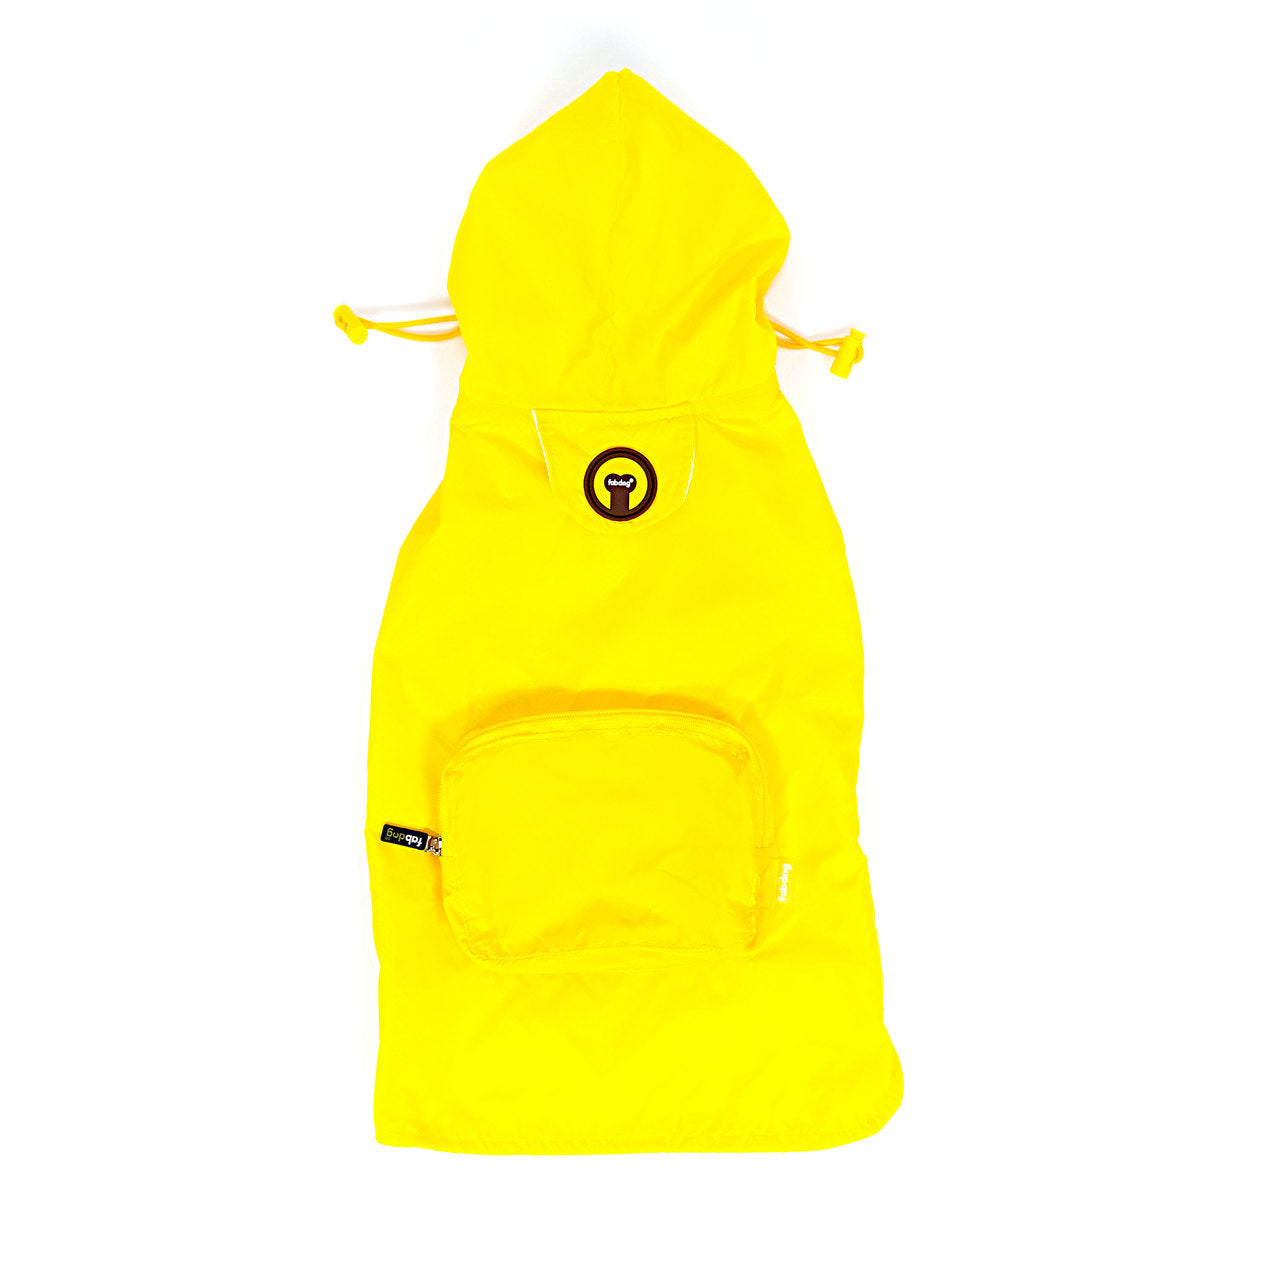 Yellow Packaway Raincoat